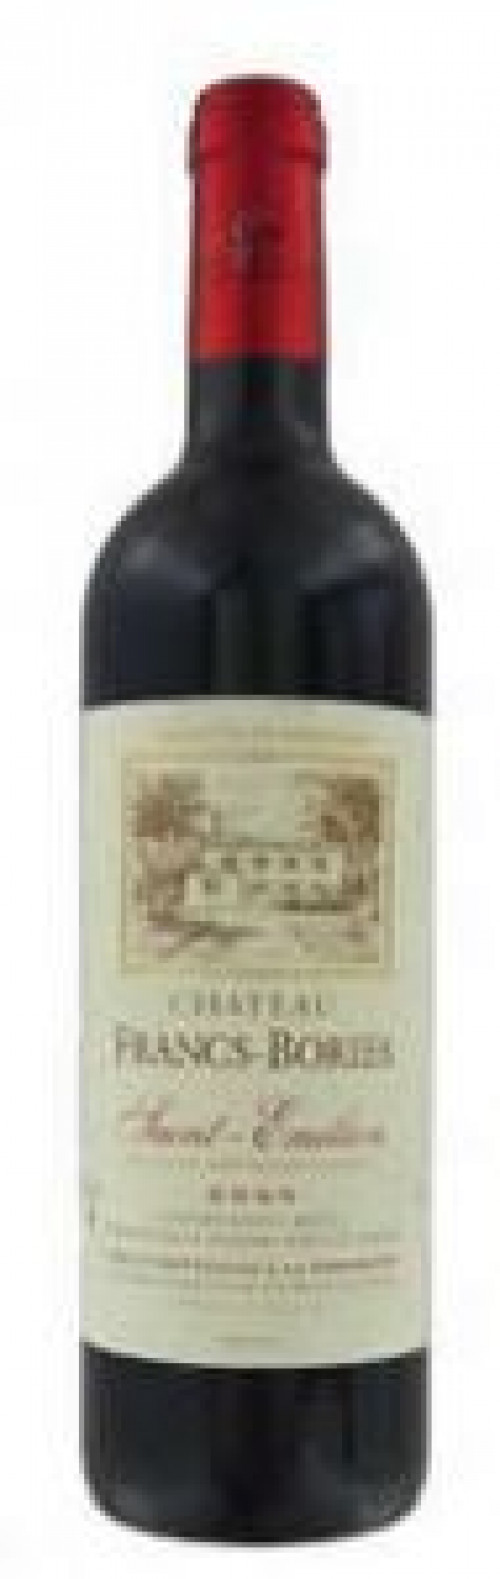 2016 Chateau Francs Bories, Saint-Emilion 750ml